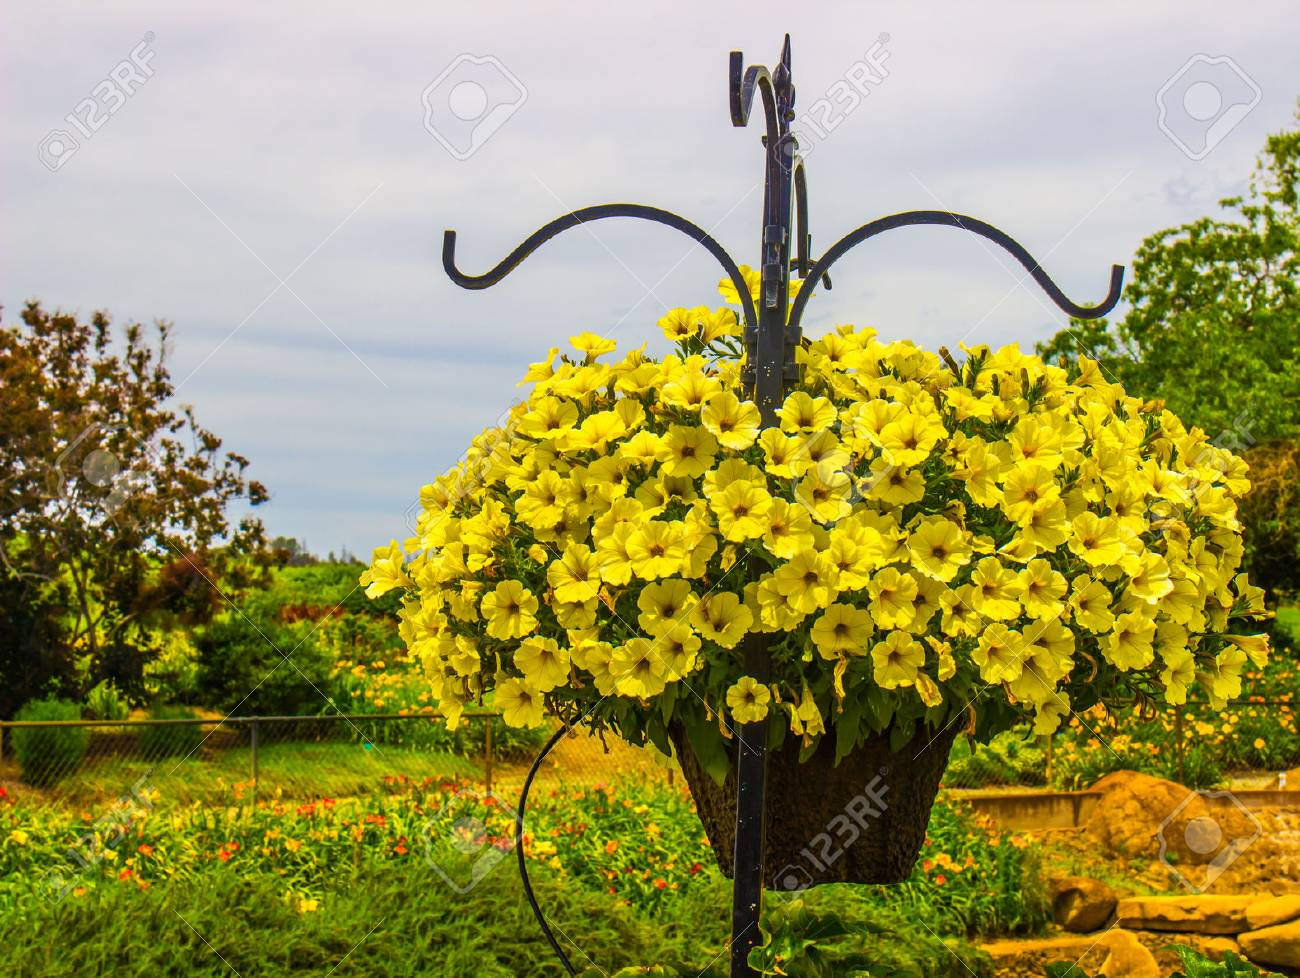 Yellow Bell Flowers In Basket Stock Photo Picture And Royalty Free